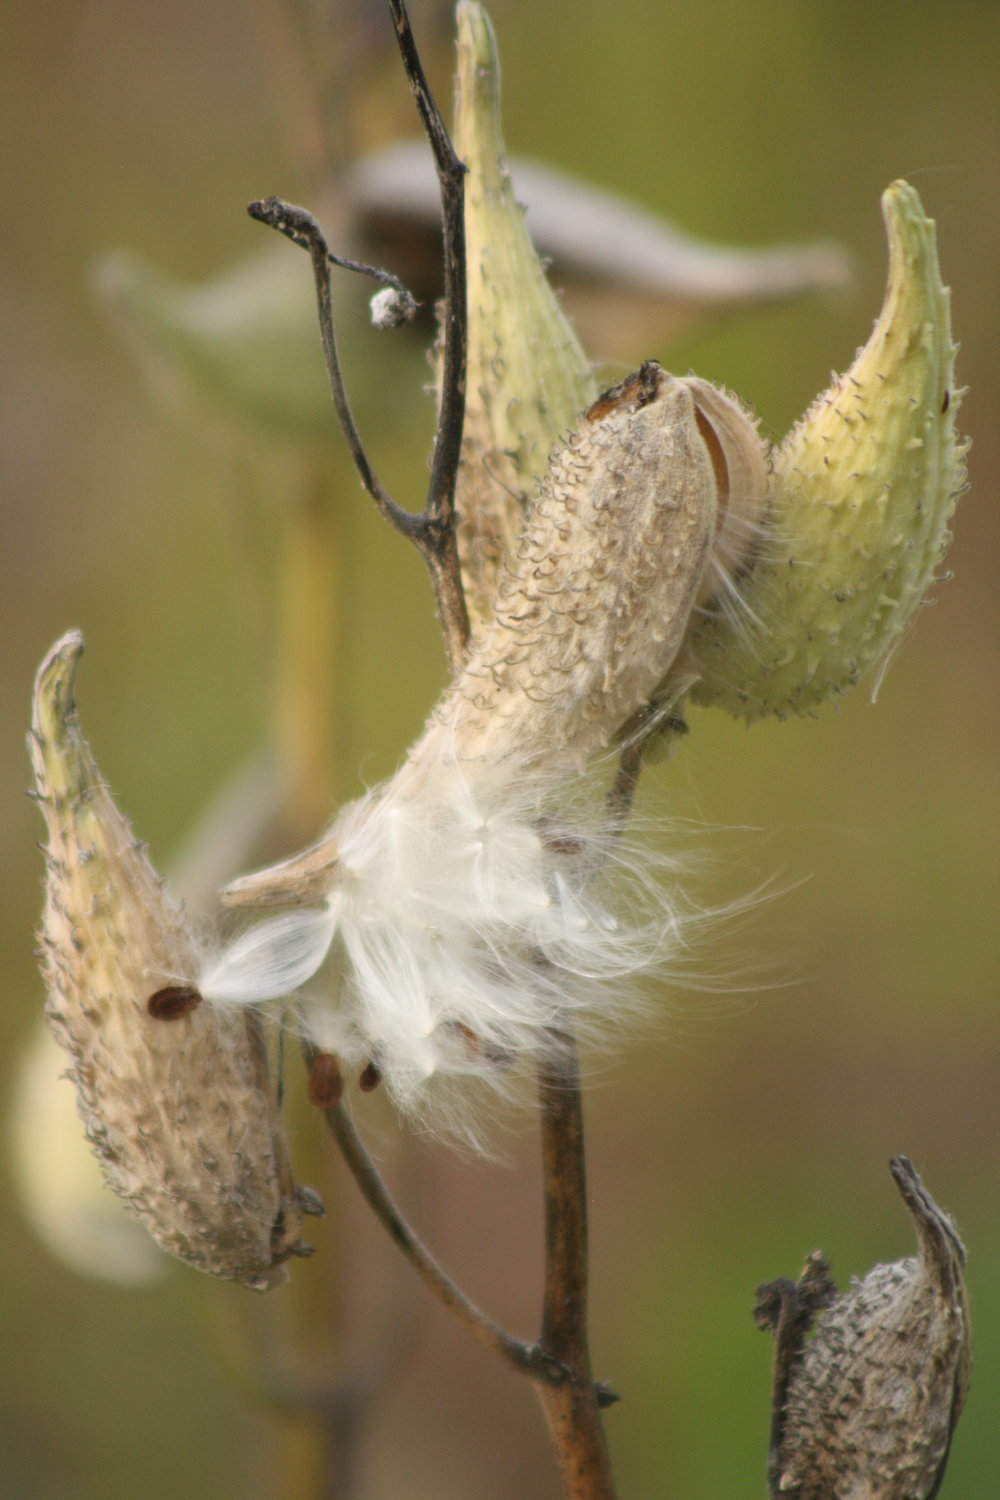 Milkweed pod | Photo by: Cyndi Jackson